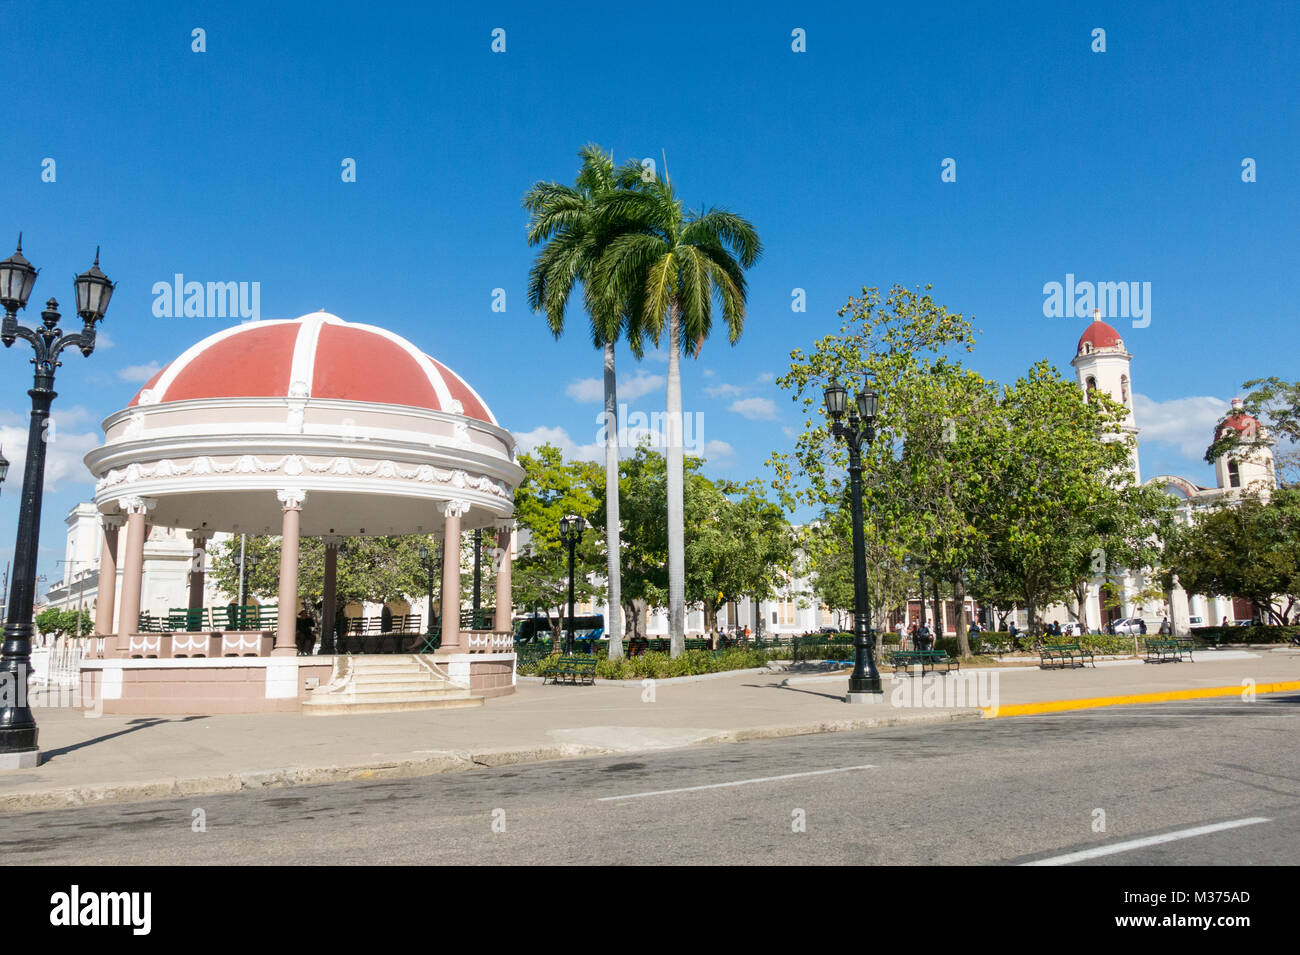 CIENFUEGOS, CUBA. Jose Marti Park, the main square of Cienfuegos, in front of the Purisima Concepcion Cathedral. - Stock Image